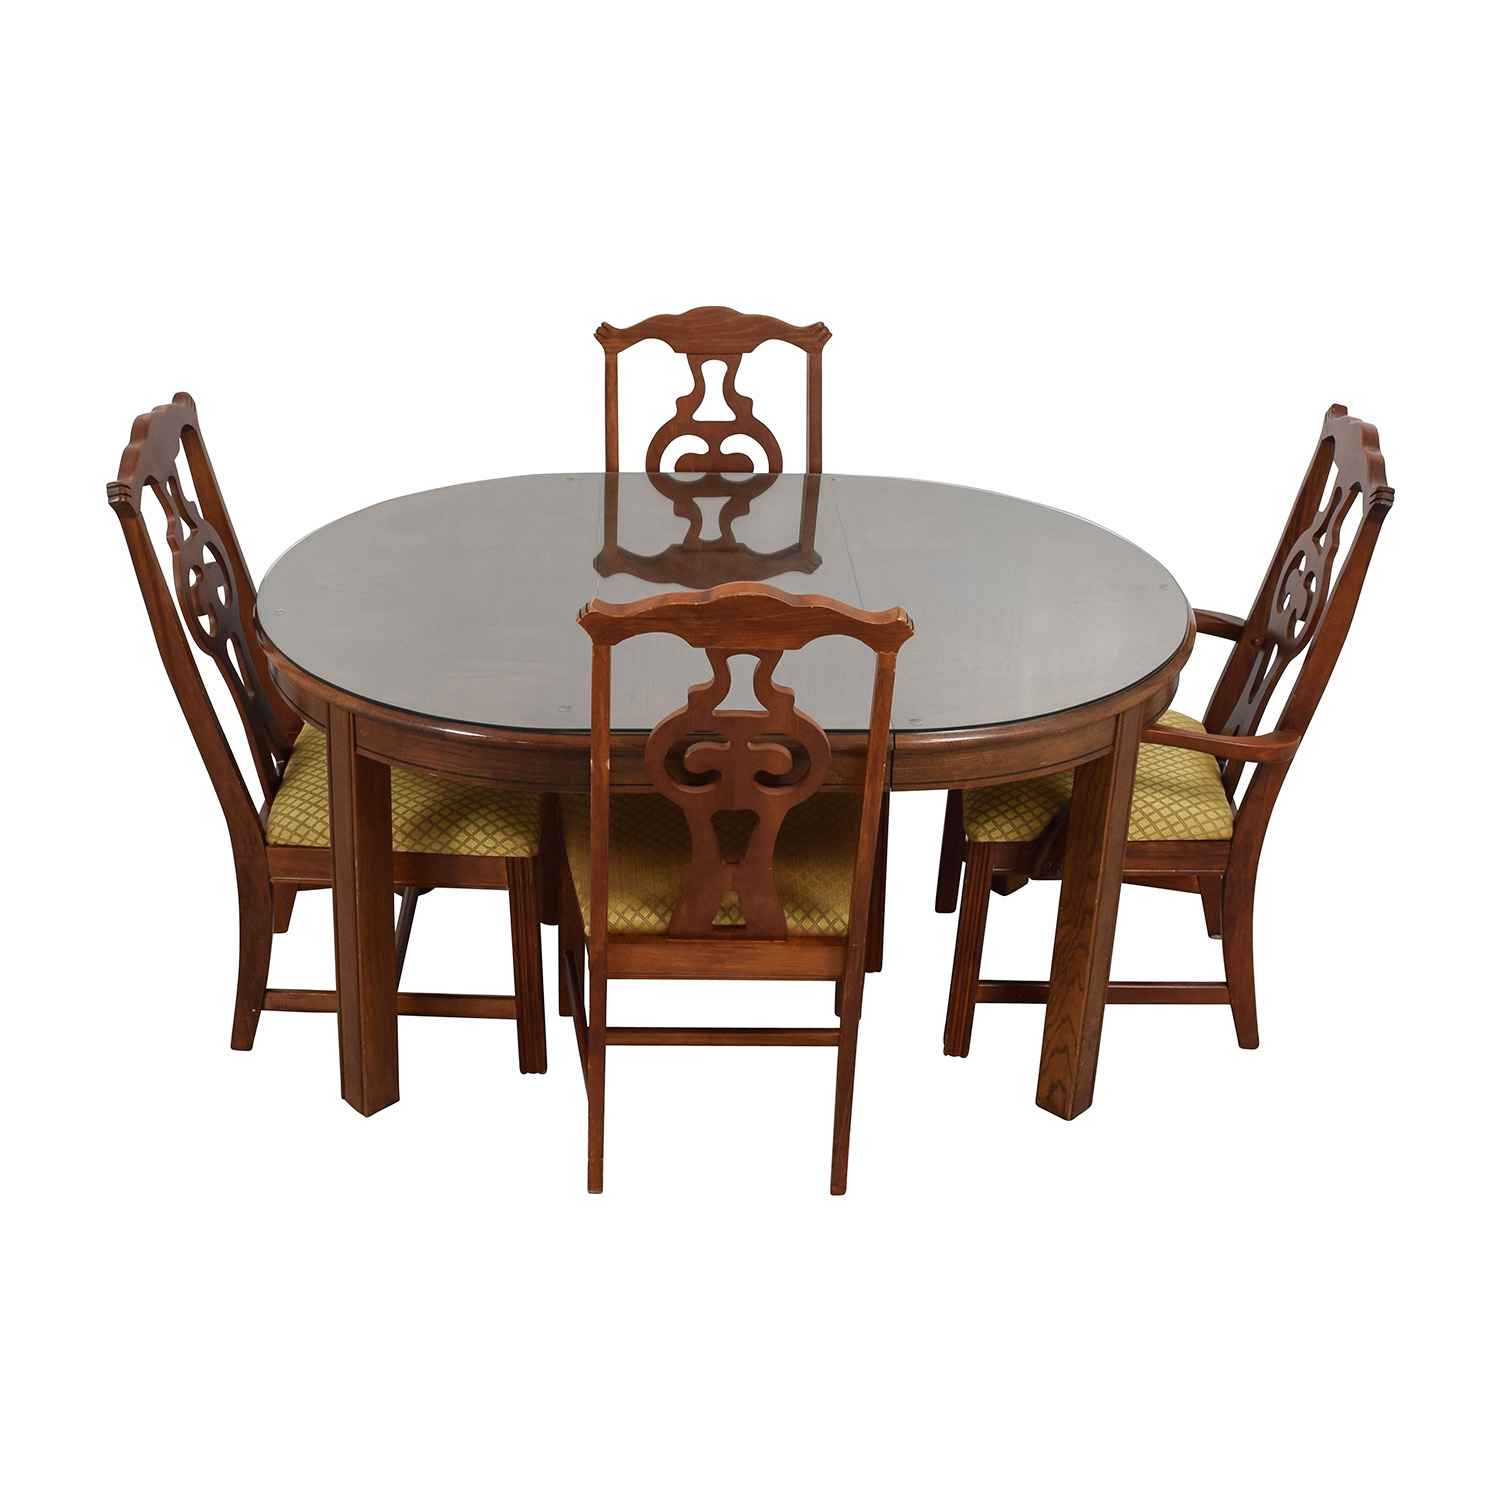 Hagerty Hagerty Wooden Dining Set on sale